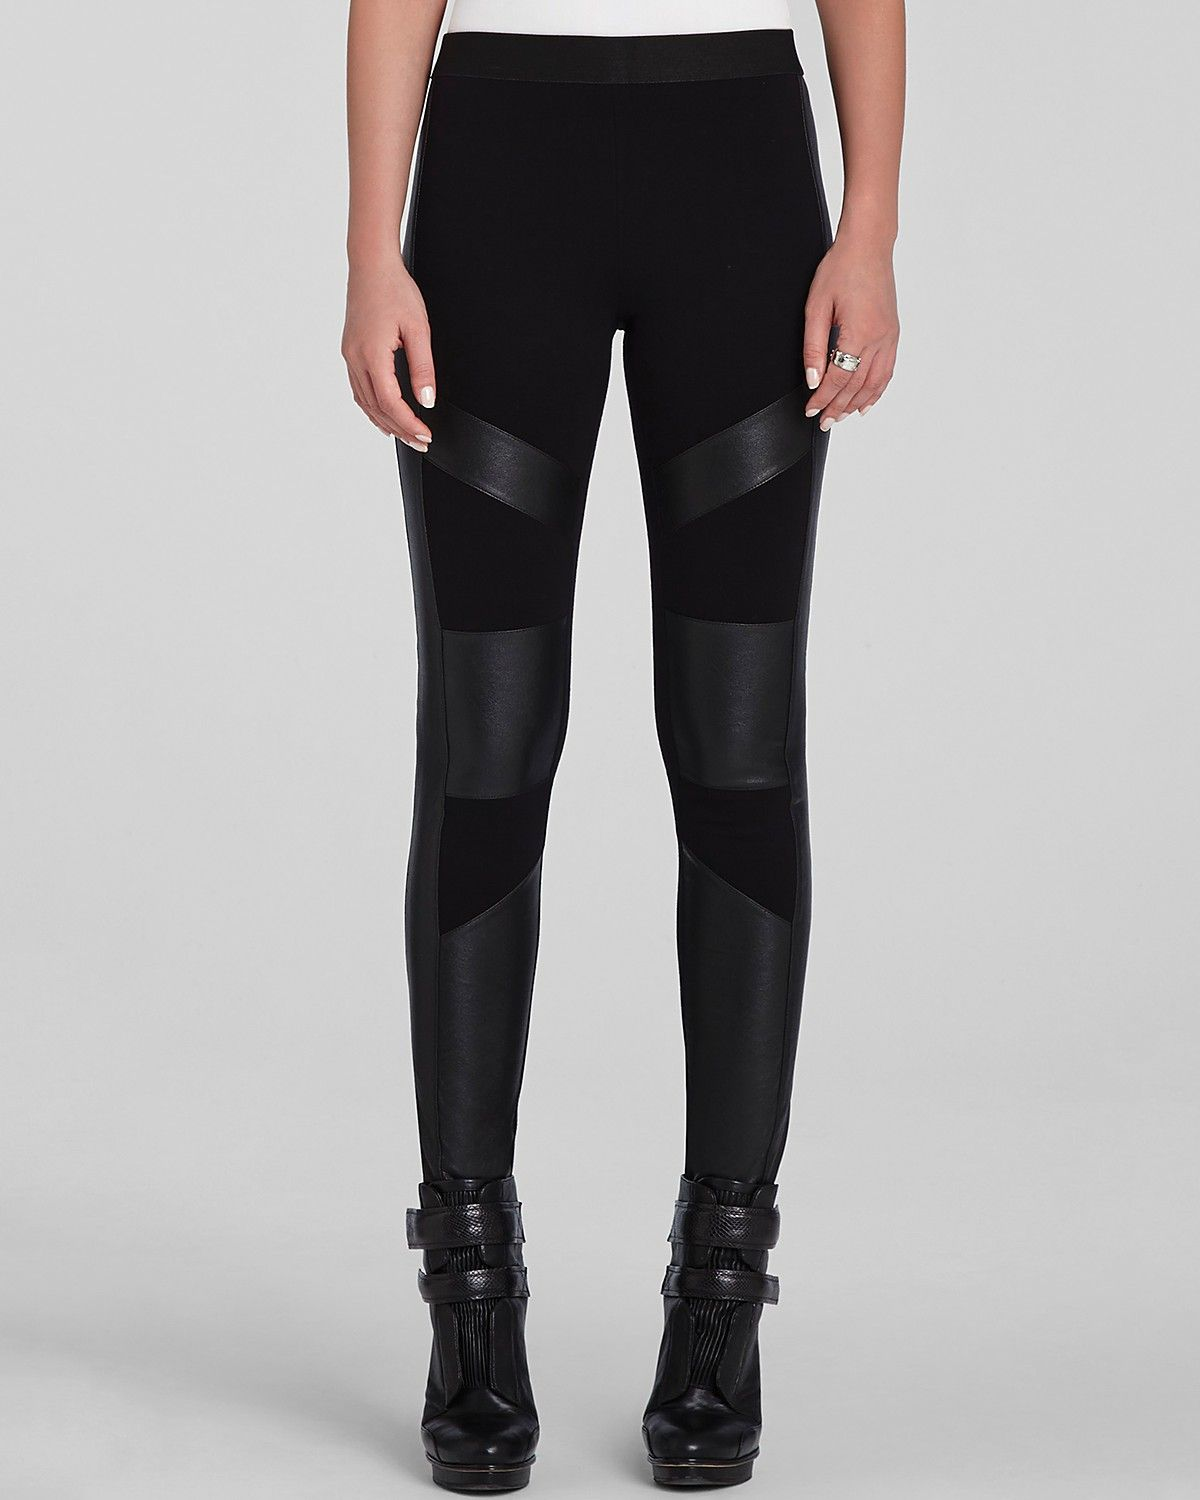 207fecd6b316bc BCBGMAXAZRIA Leggings - Bayle Faux Leather Panel | Bloomingdale's ...